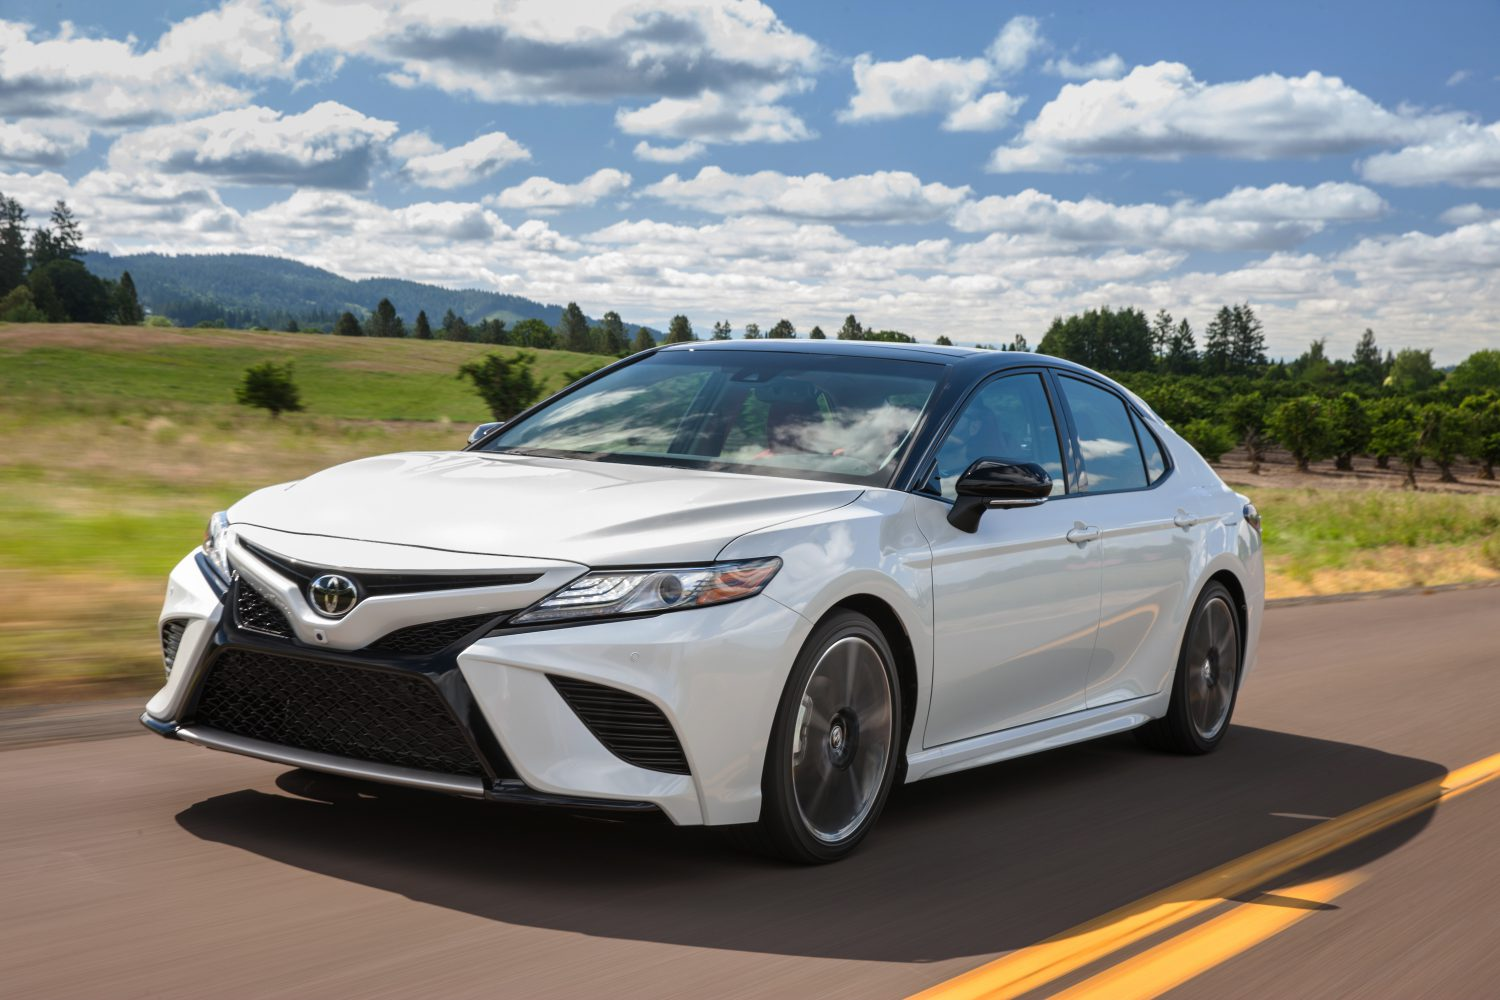 2020 Toyota Camry Review, Ratings, Specs, Prices, and ...